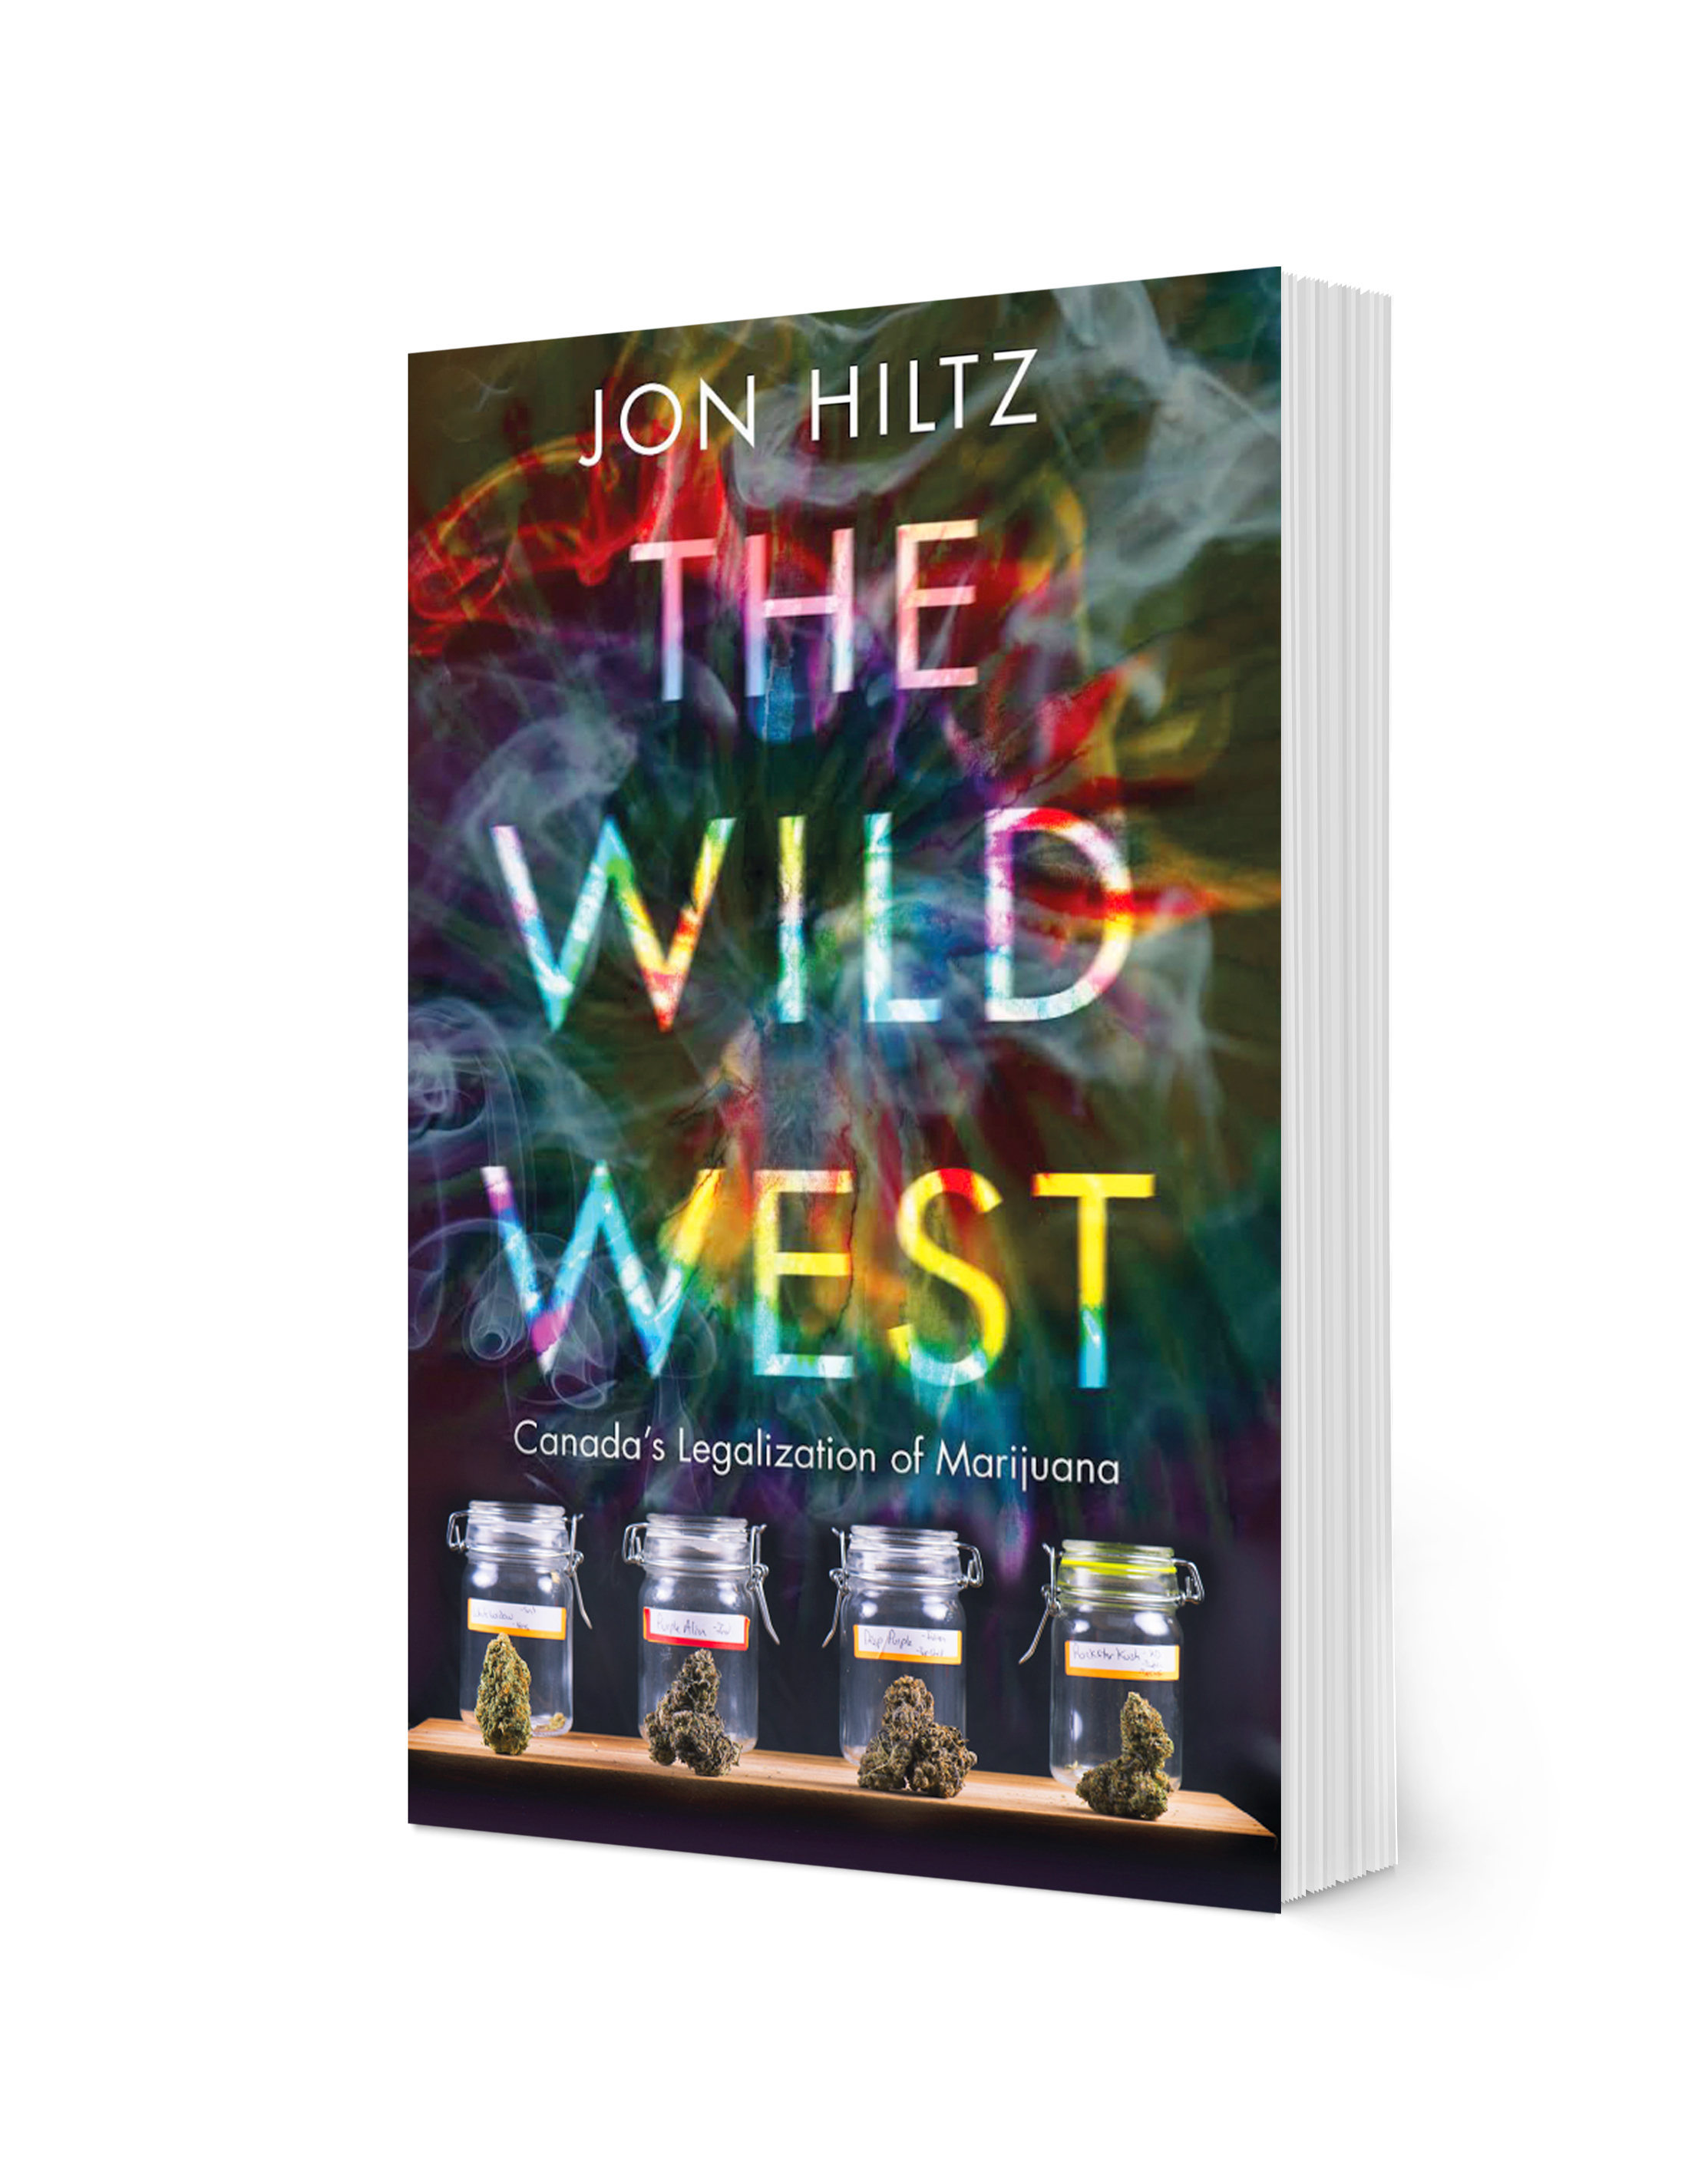 Jon Hiltz The Wild West Book